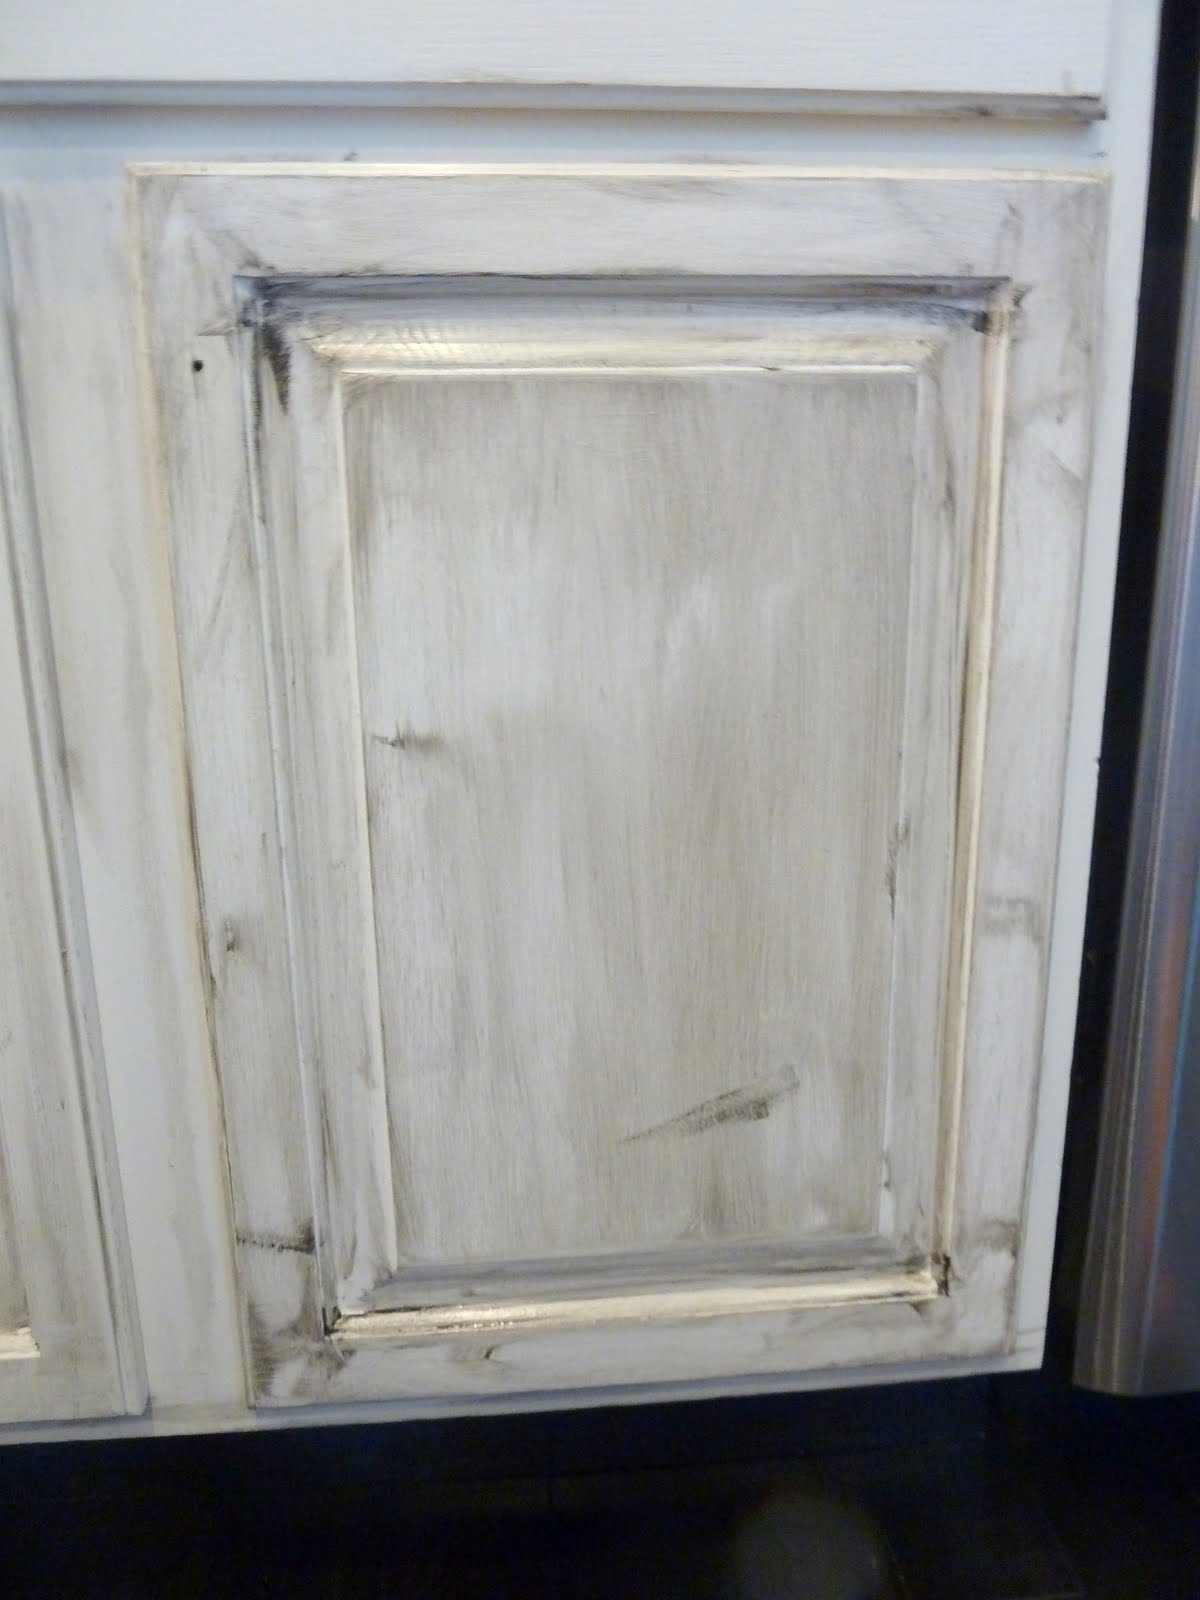 glazed kitchen cabinets - Distressed Kitchen Cabinets: How To Distress Your Kitchen Cabinets